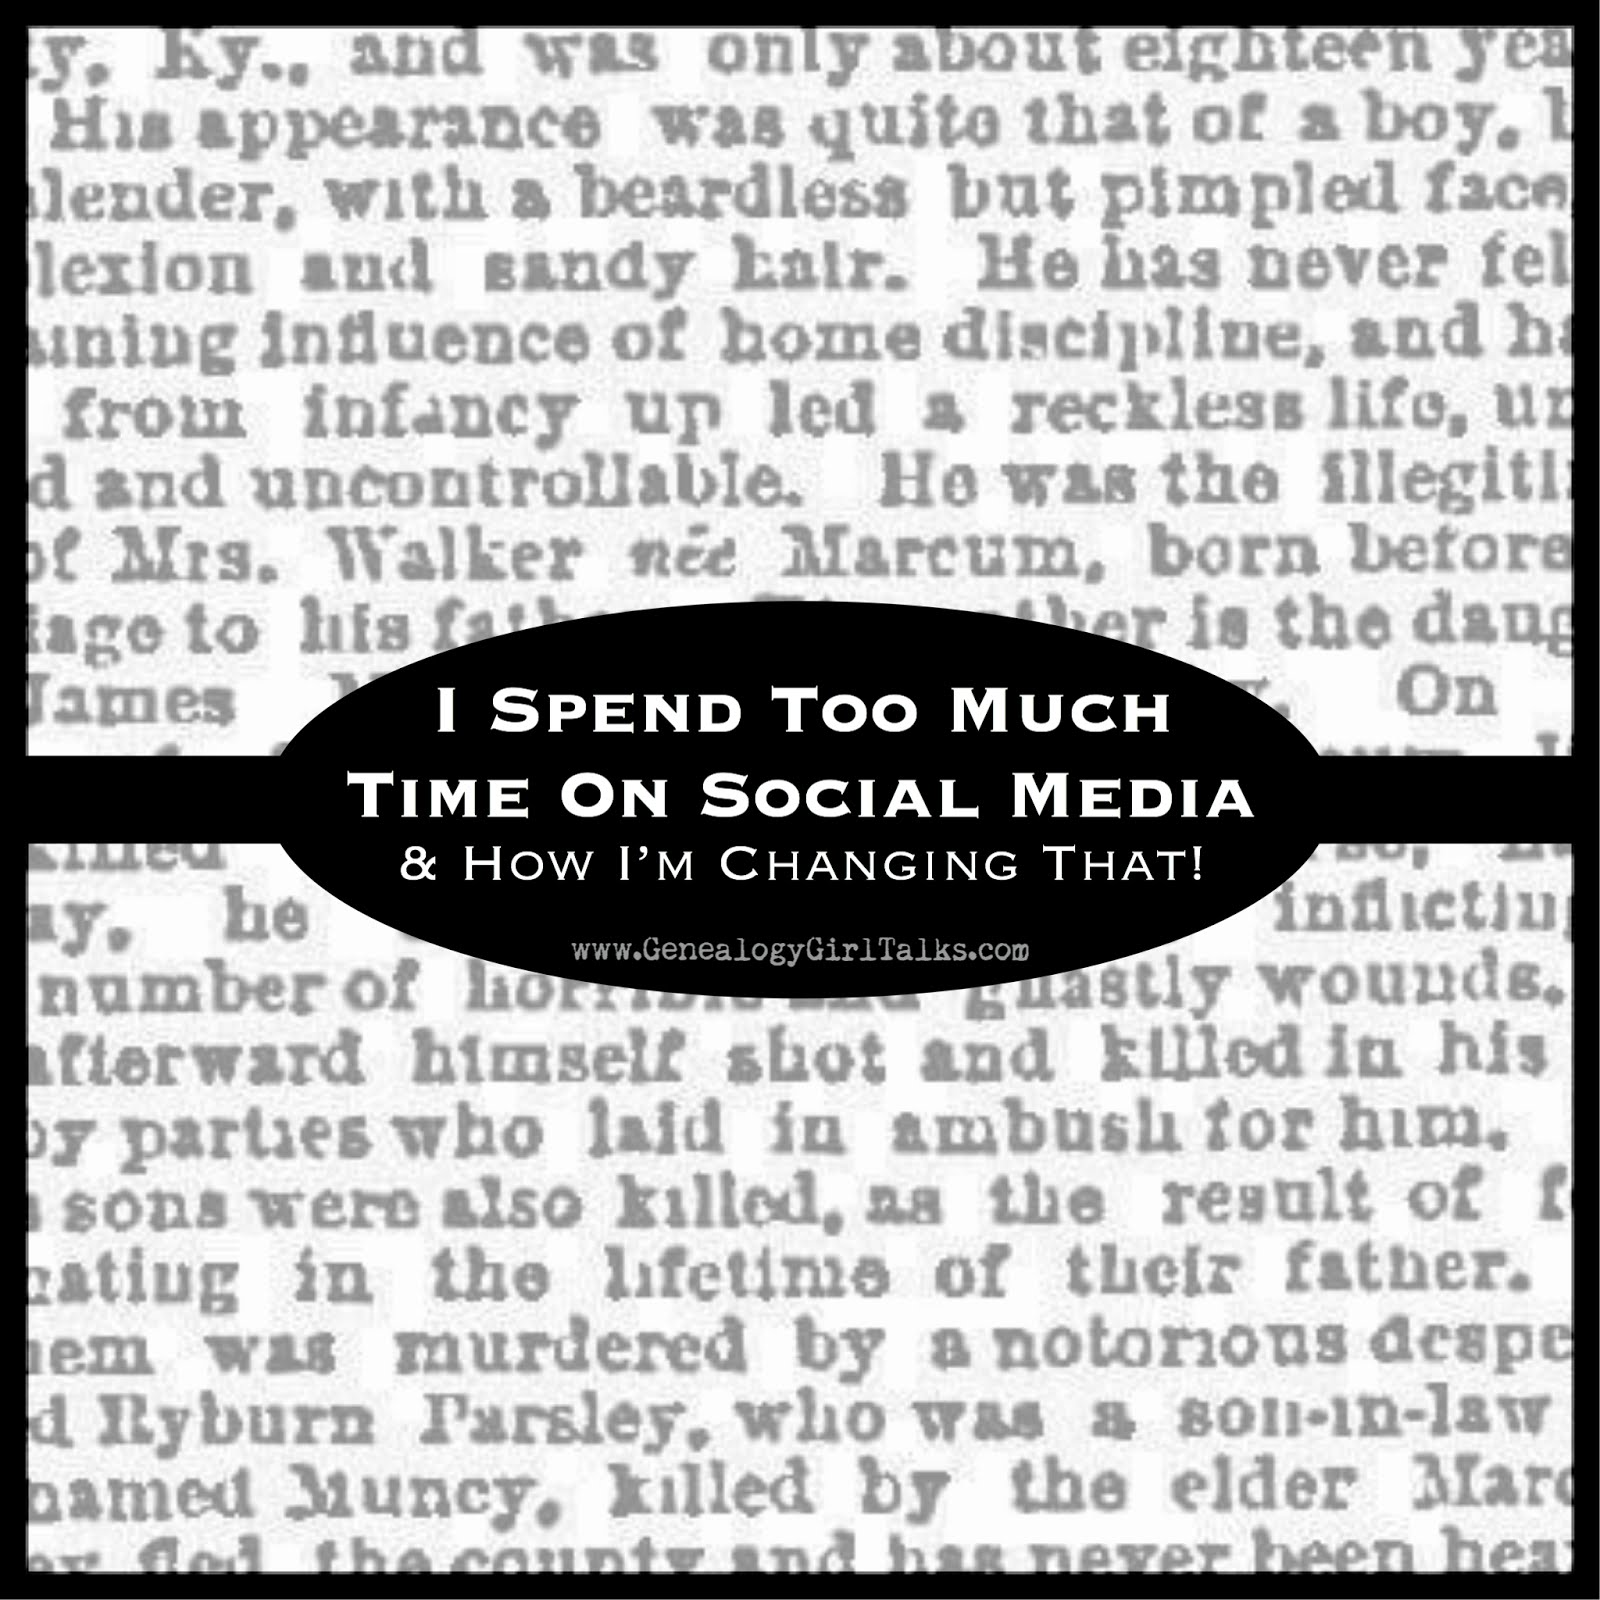 I Spend Too Much Time On Social Media and How I'm Changing That! by Genealogy Girl Talks